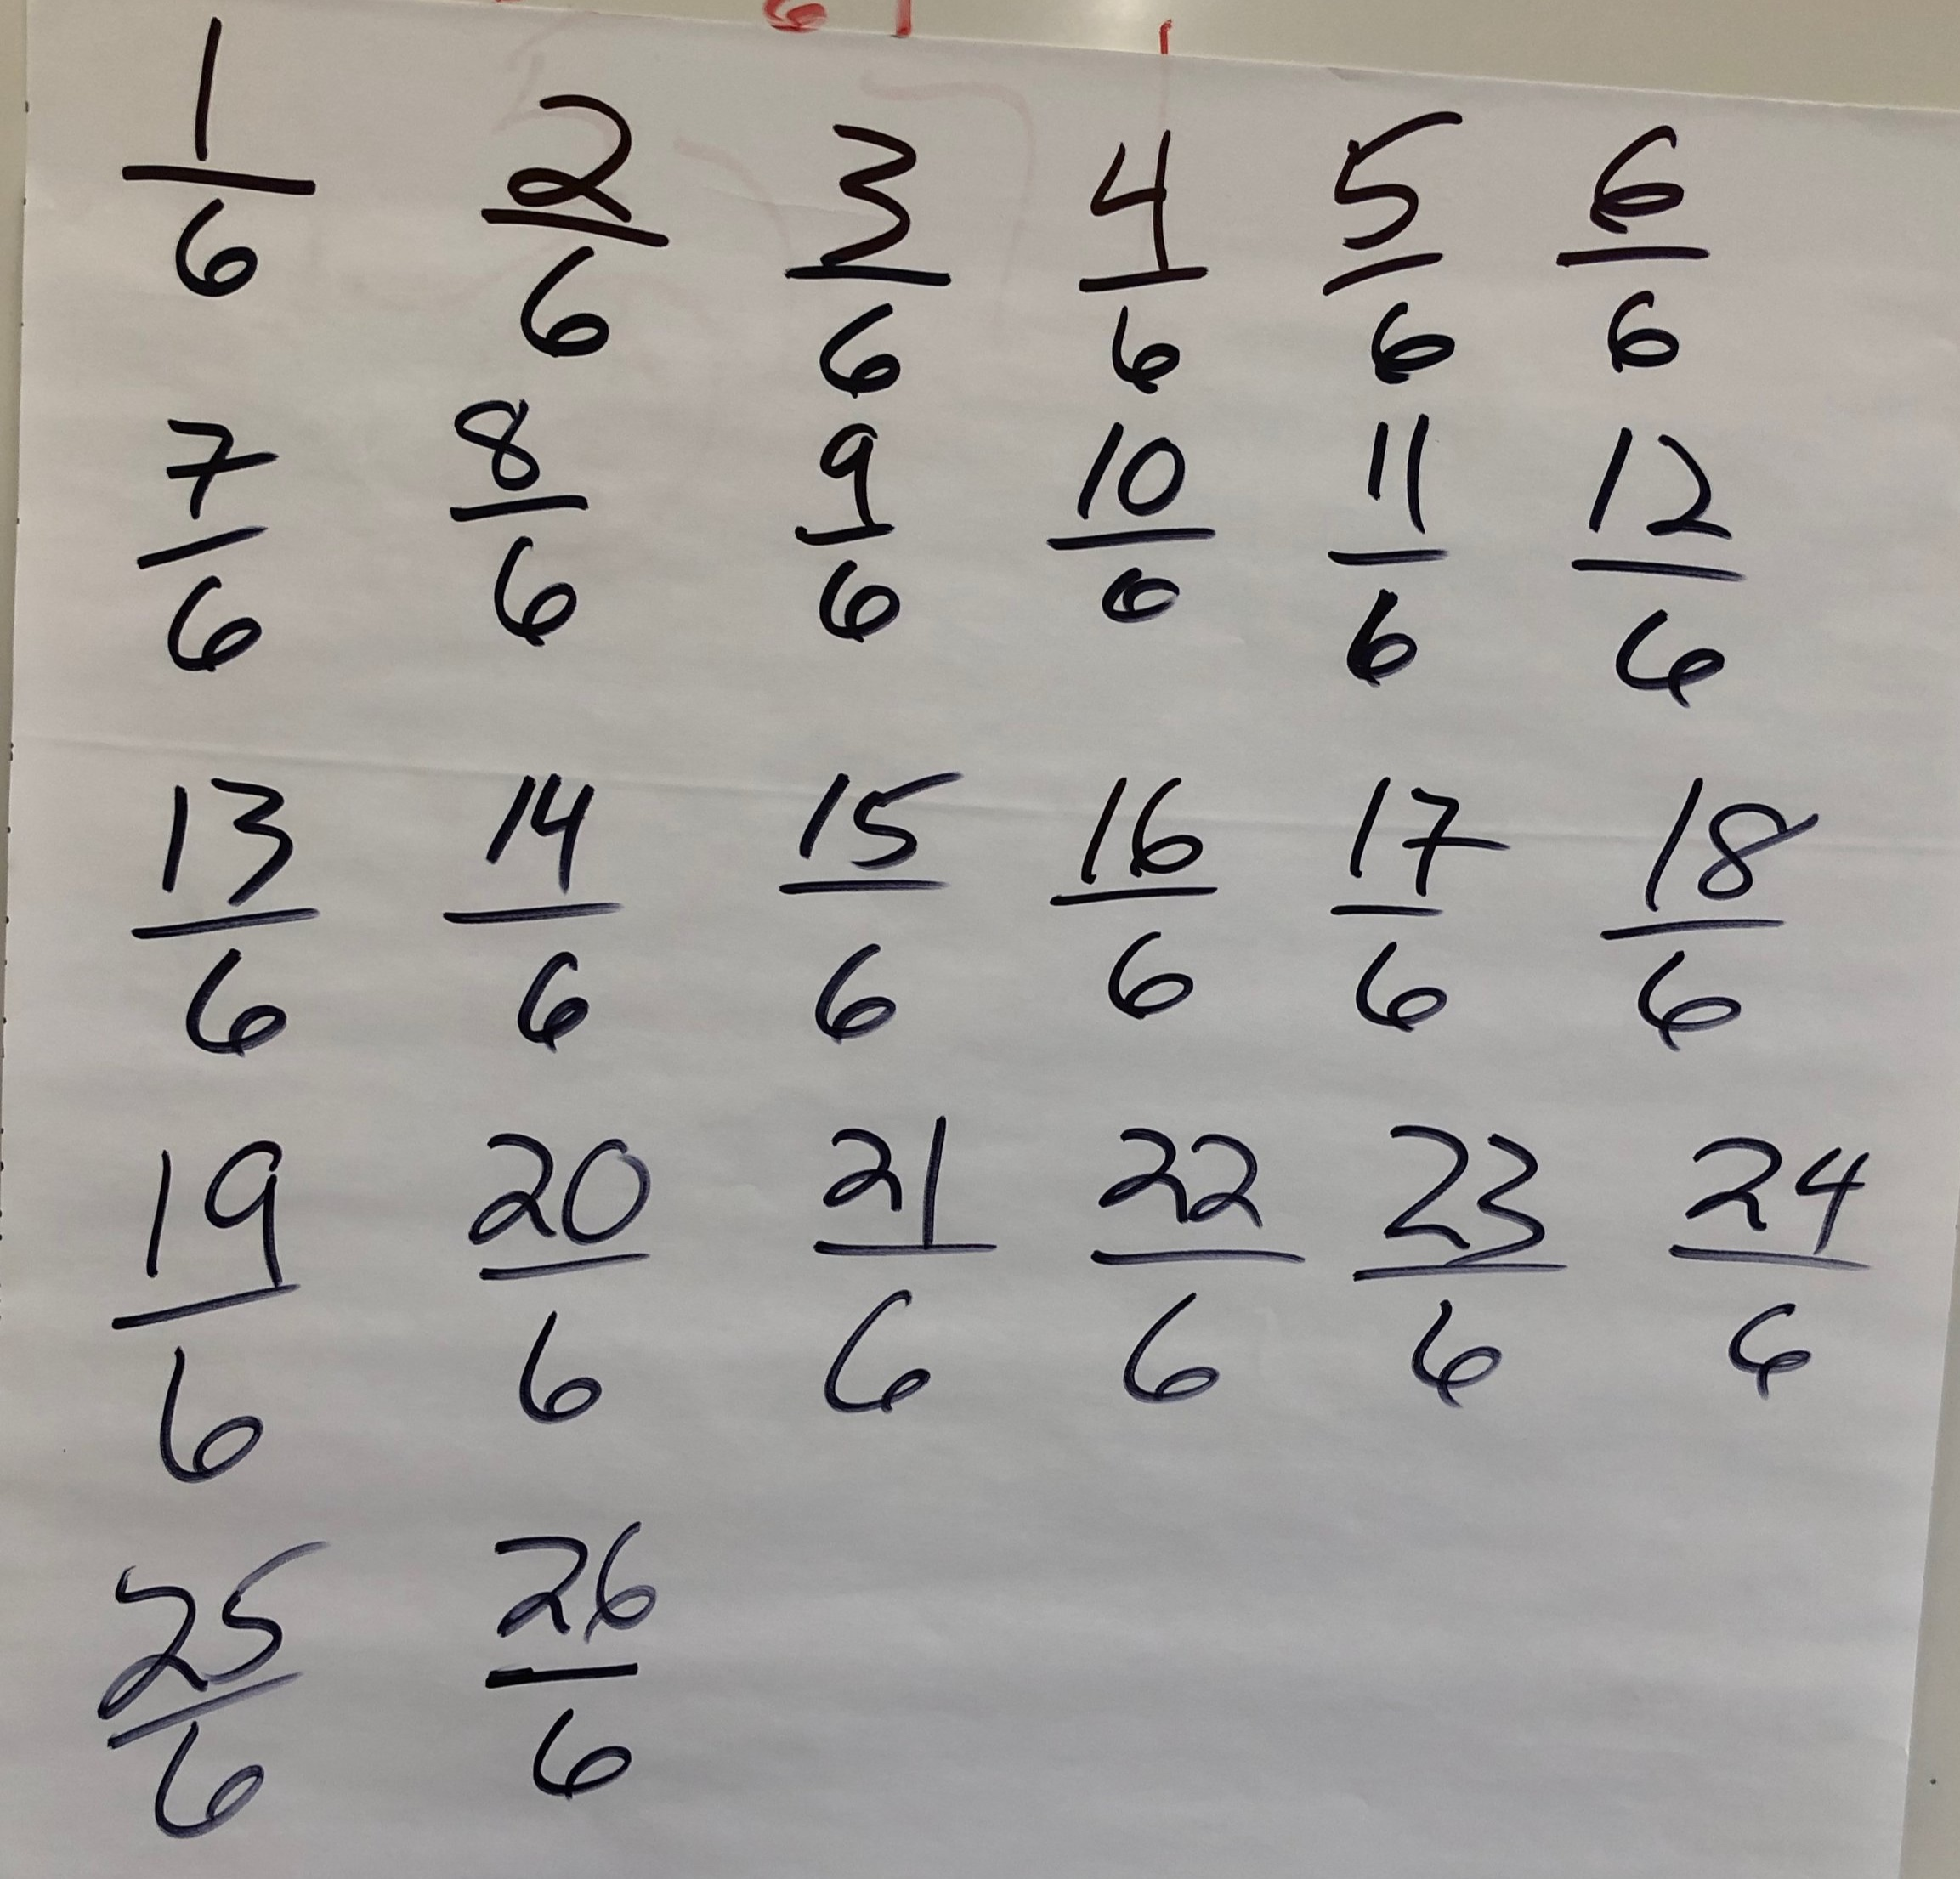 Fraction Choral Count: Recording the count